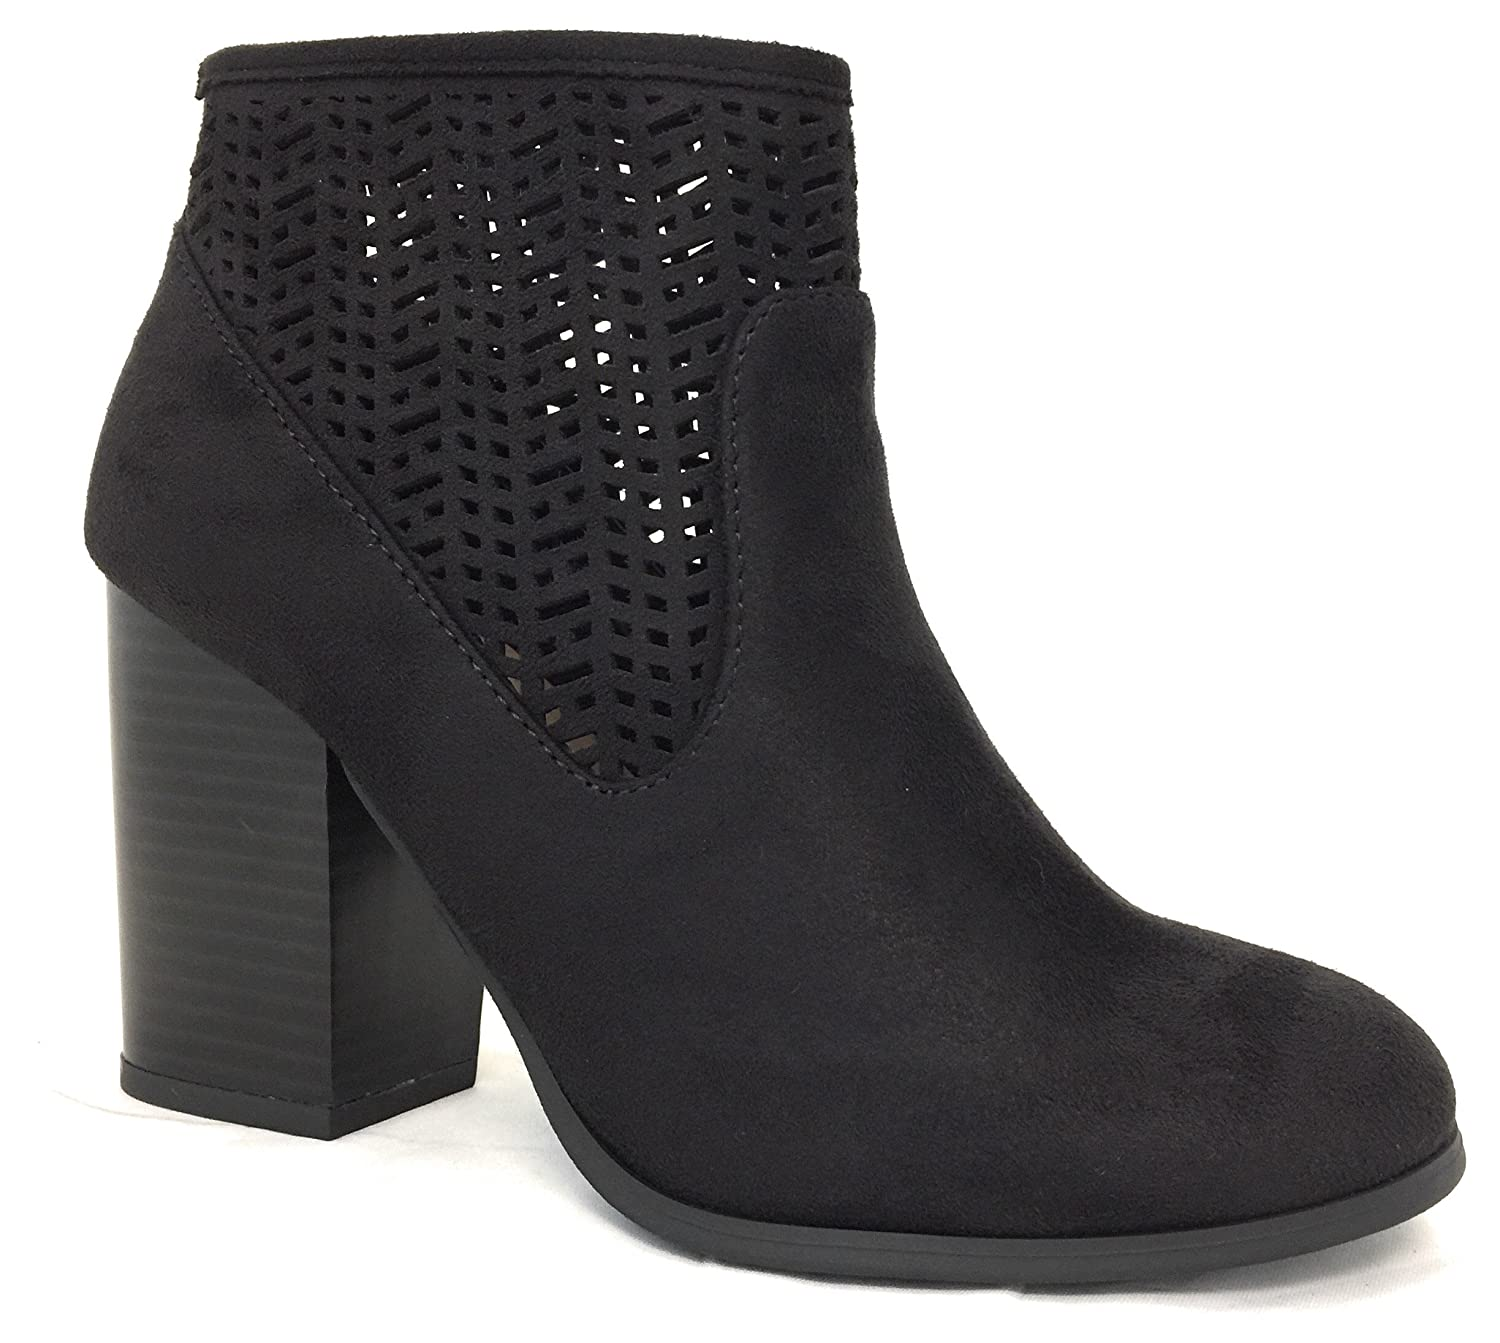 MYRA BLACK IMITATION SUEDE NB 3.5 INCH BLOCK CHUNKY HEEL BOOTIE ANKLE BOOT LASER CUTOUT